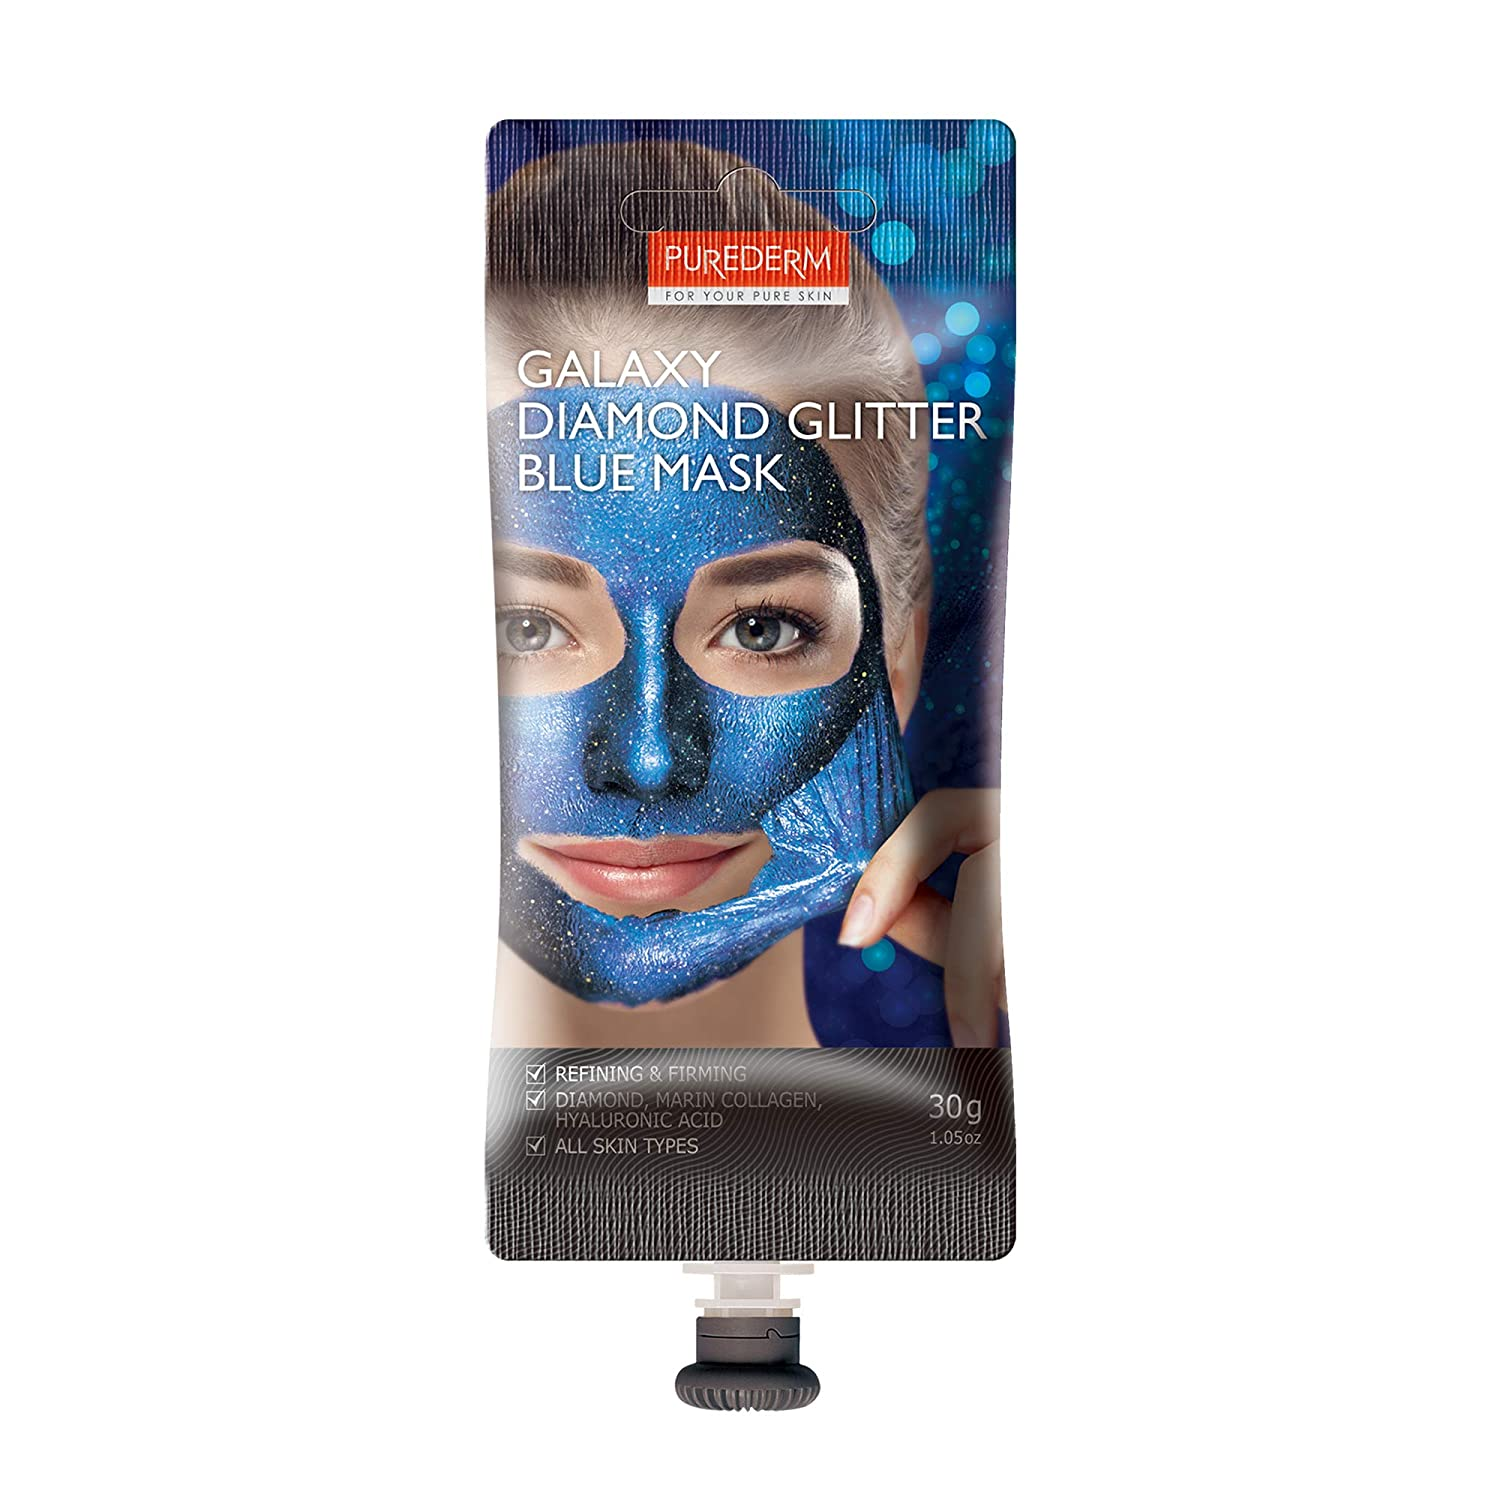 Amazon.com: PUREDERM Galaxy Black Peel-Off Mask 1.76oz / Korean beauty/Spout type/Peel off mask, Glitter mask, Peeling mask, Daily mask, Pore clean mask, ...